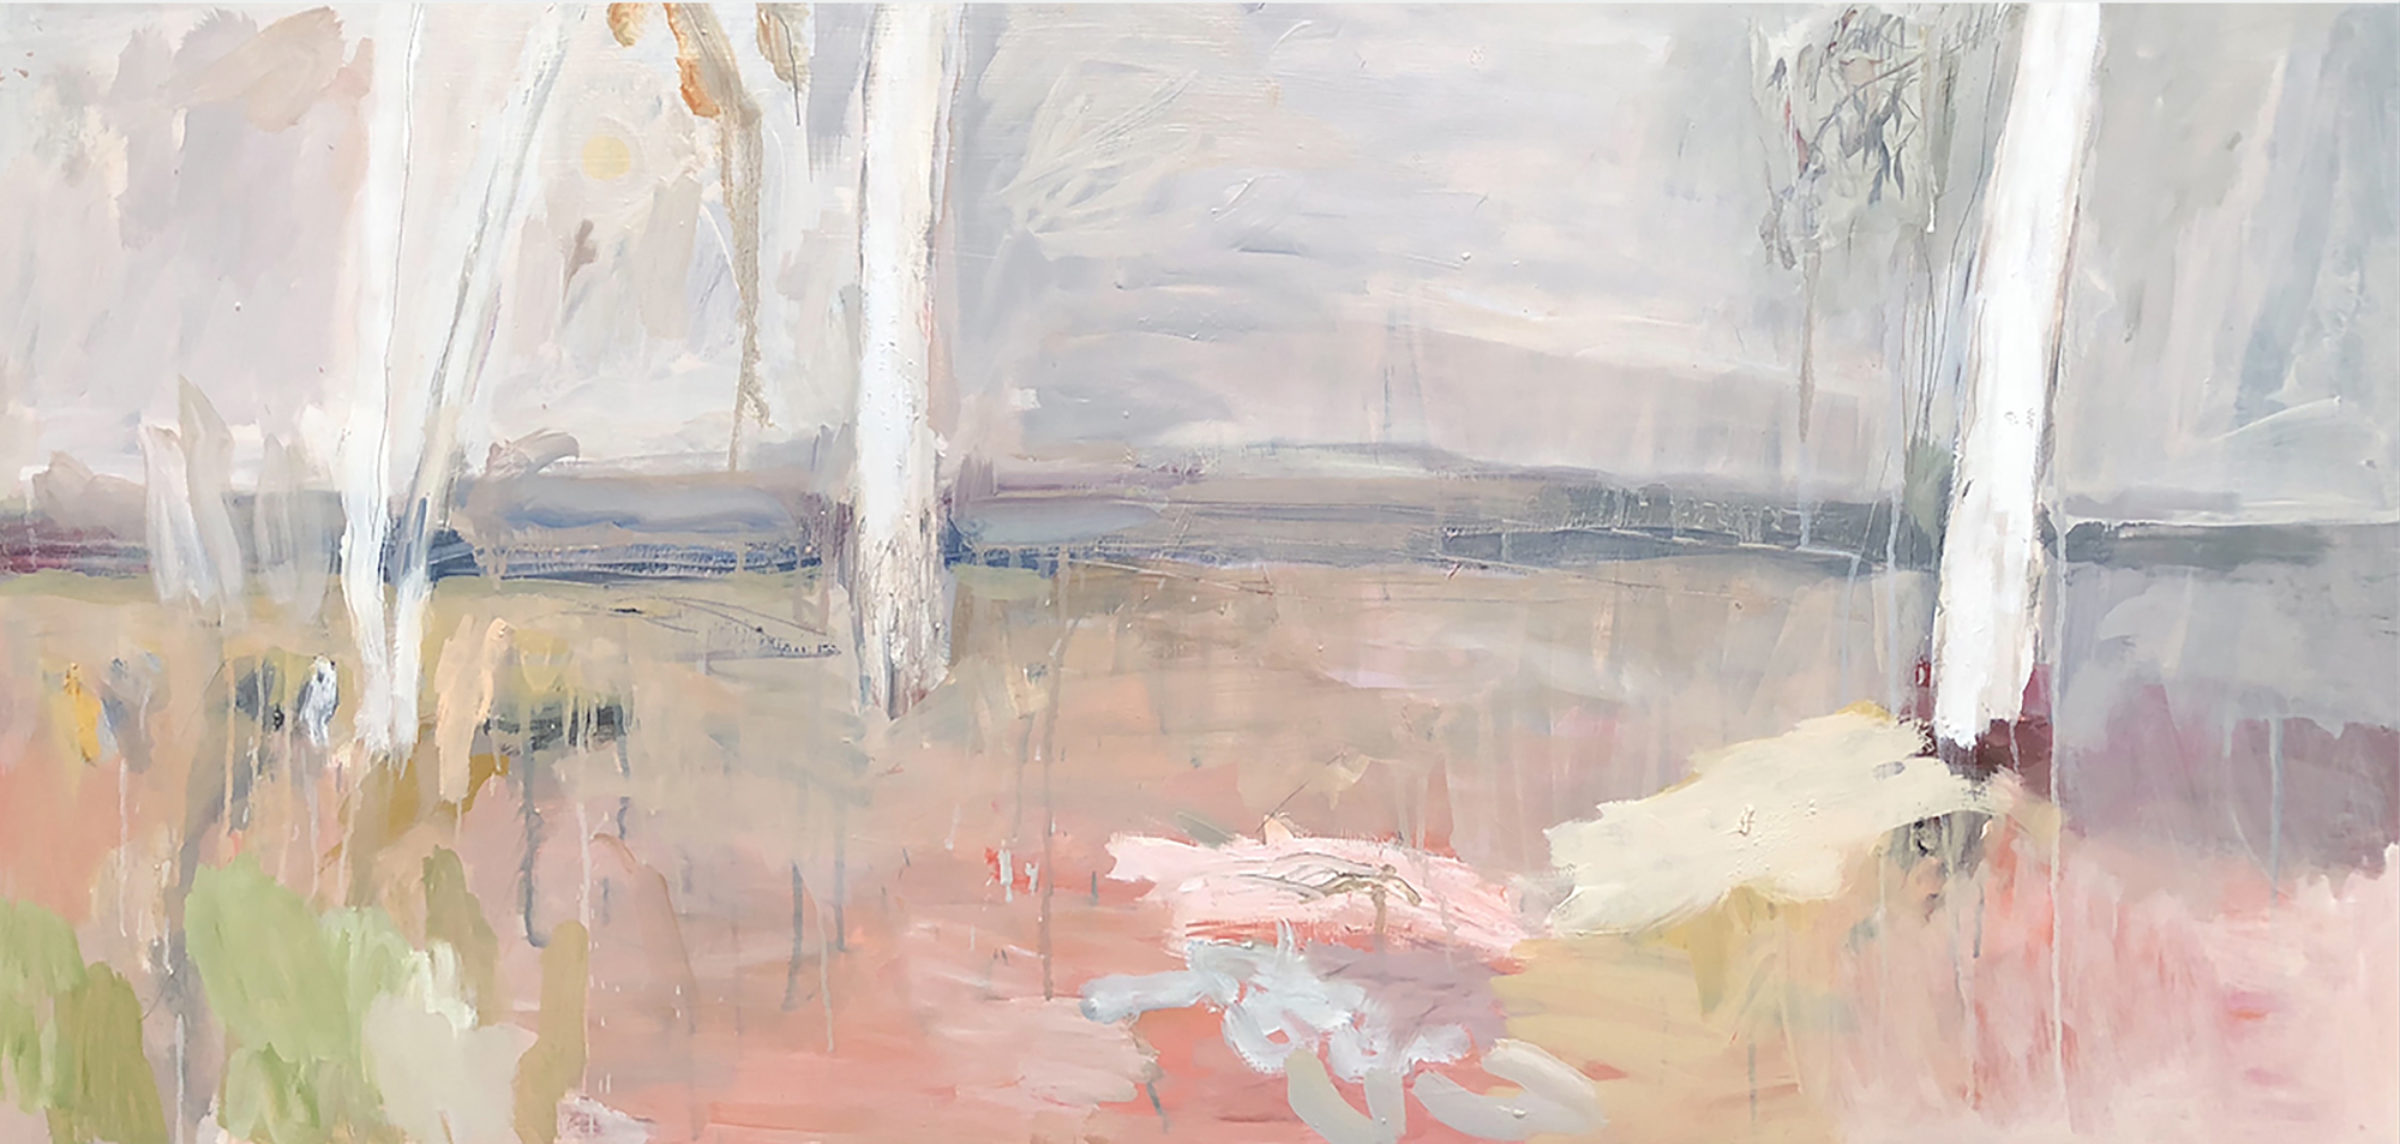 DK_ECG_Overcast-in-the-valley_2018_60x120cm_oil-and-collage-on-board_2400